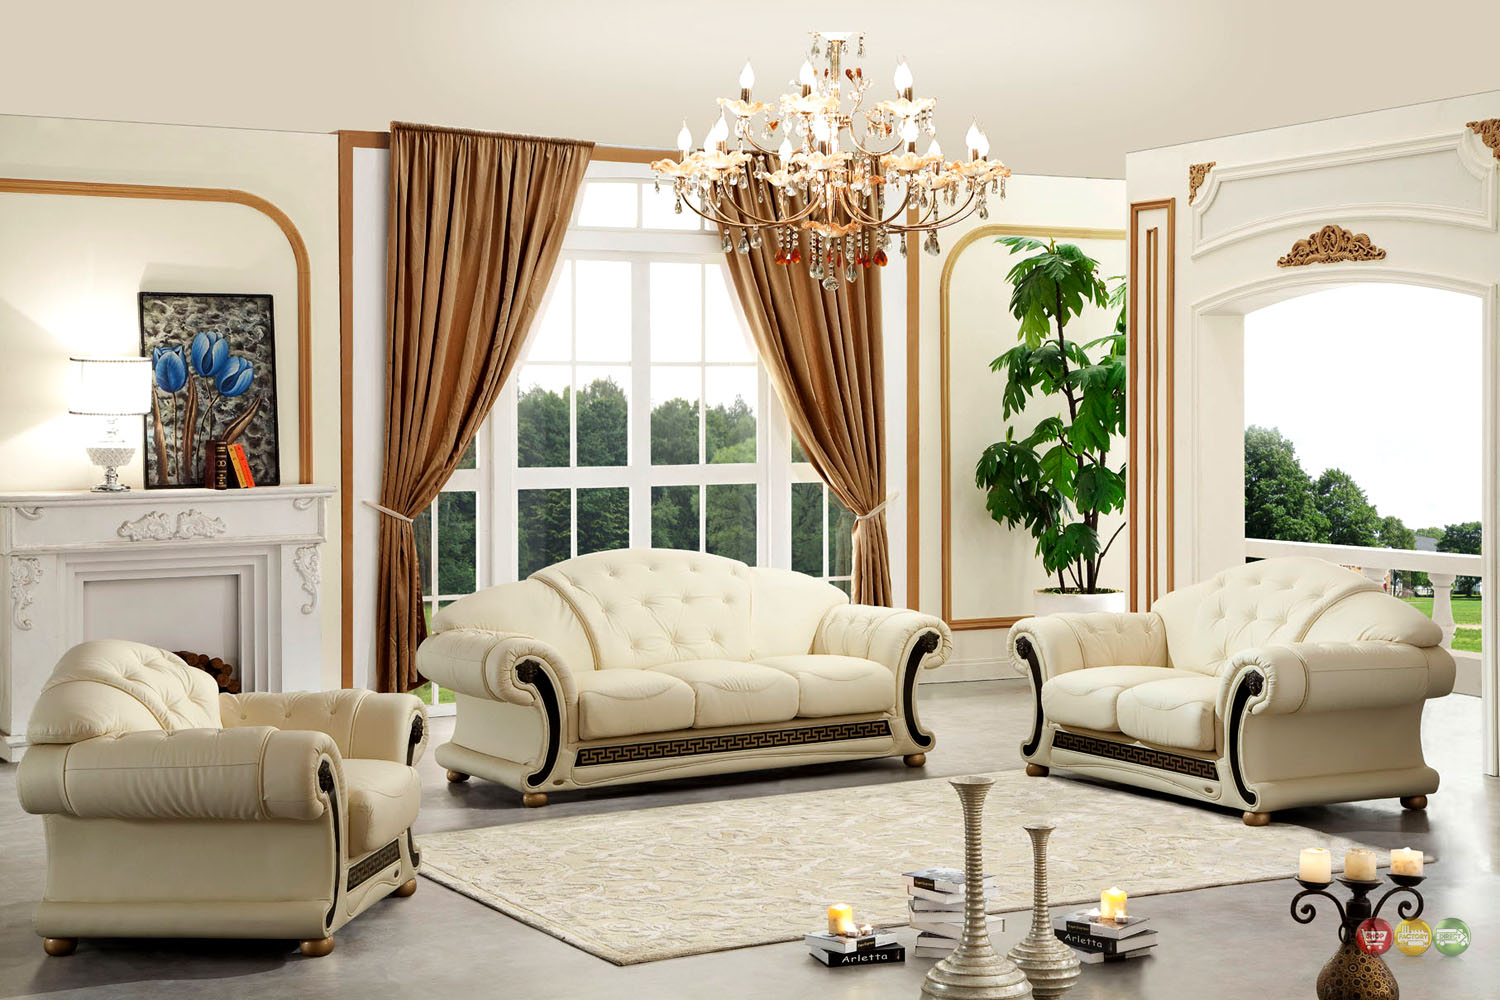 Versace cleopatra cream italian top grain leather beige living room sofa set Living rooms with leather sofas